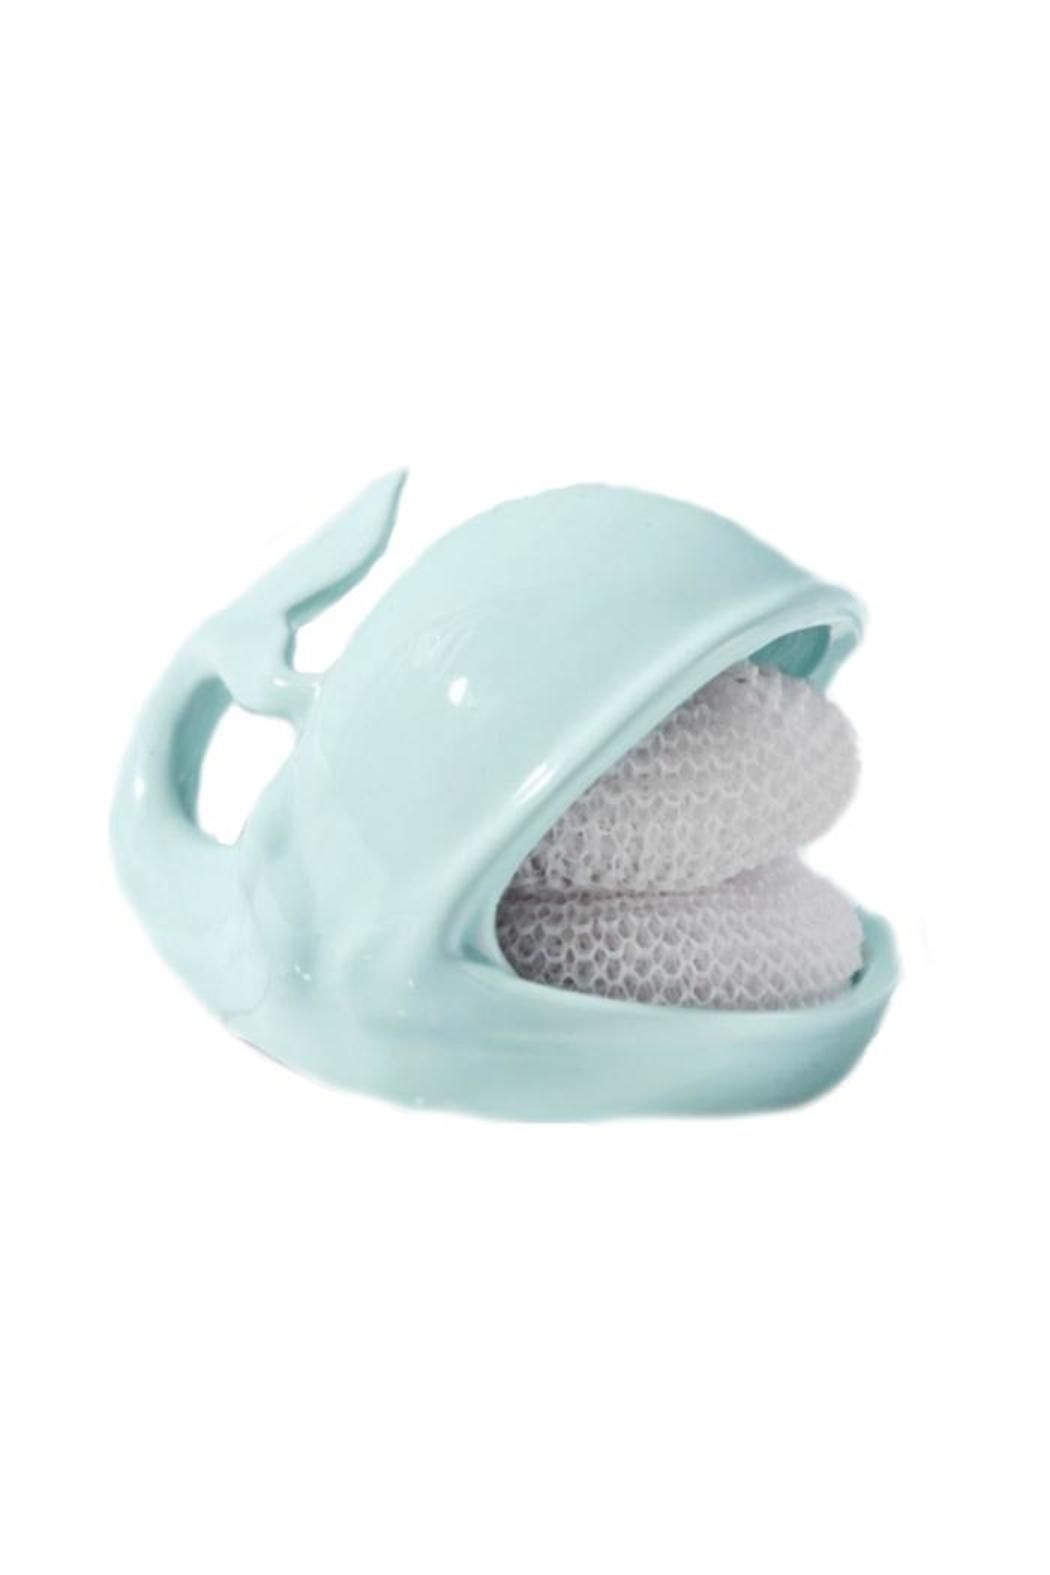 Two\'s Company Whale Scrubby Holder | Kitchen tools, Home and The o\'jays